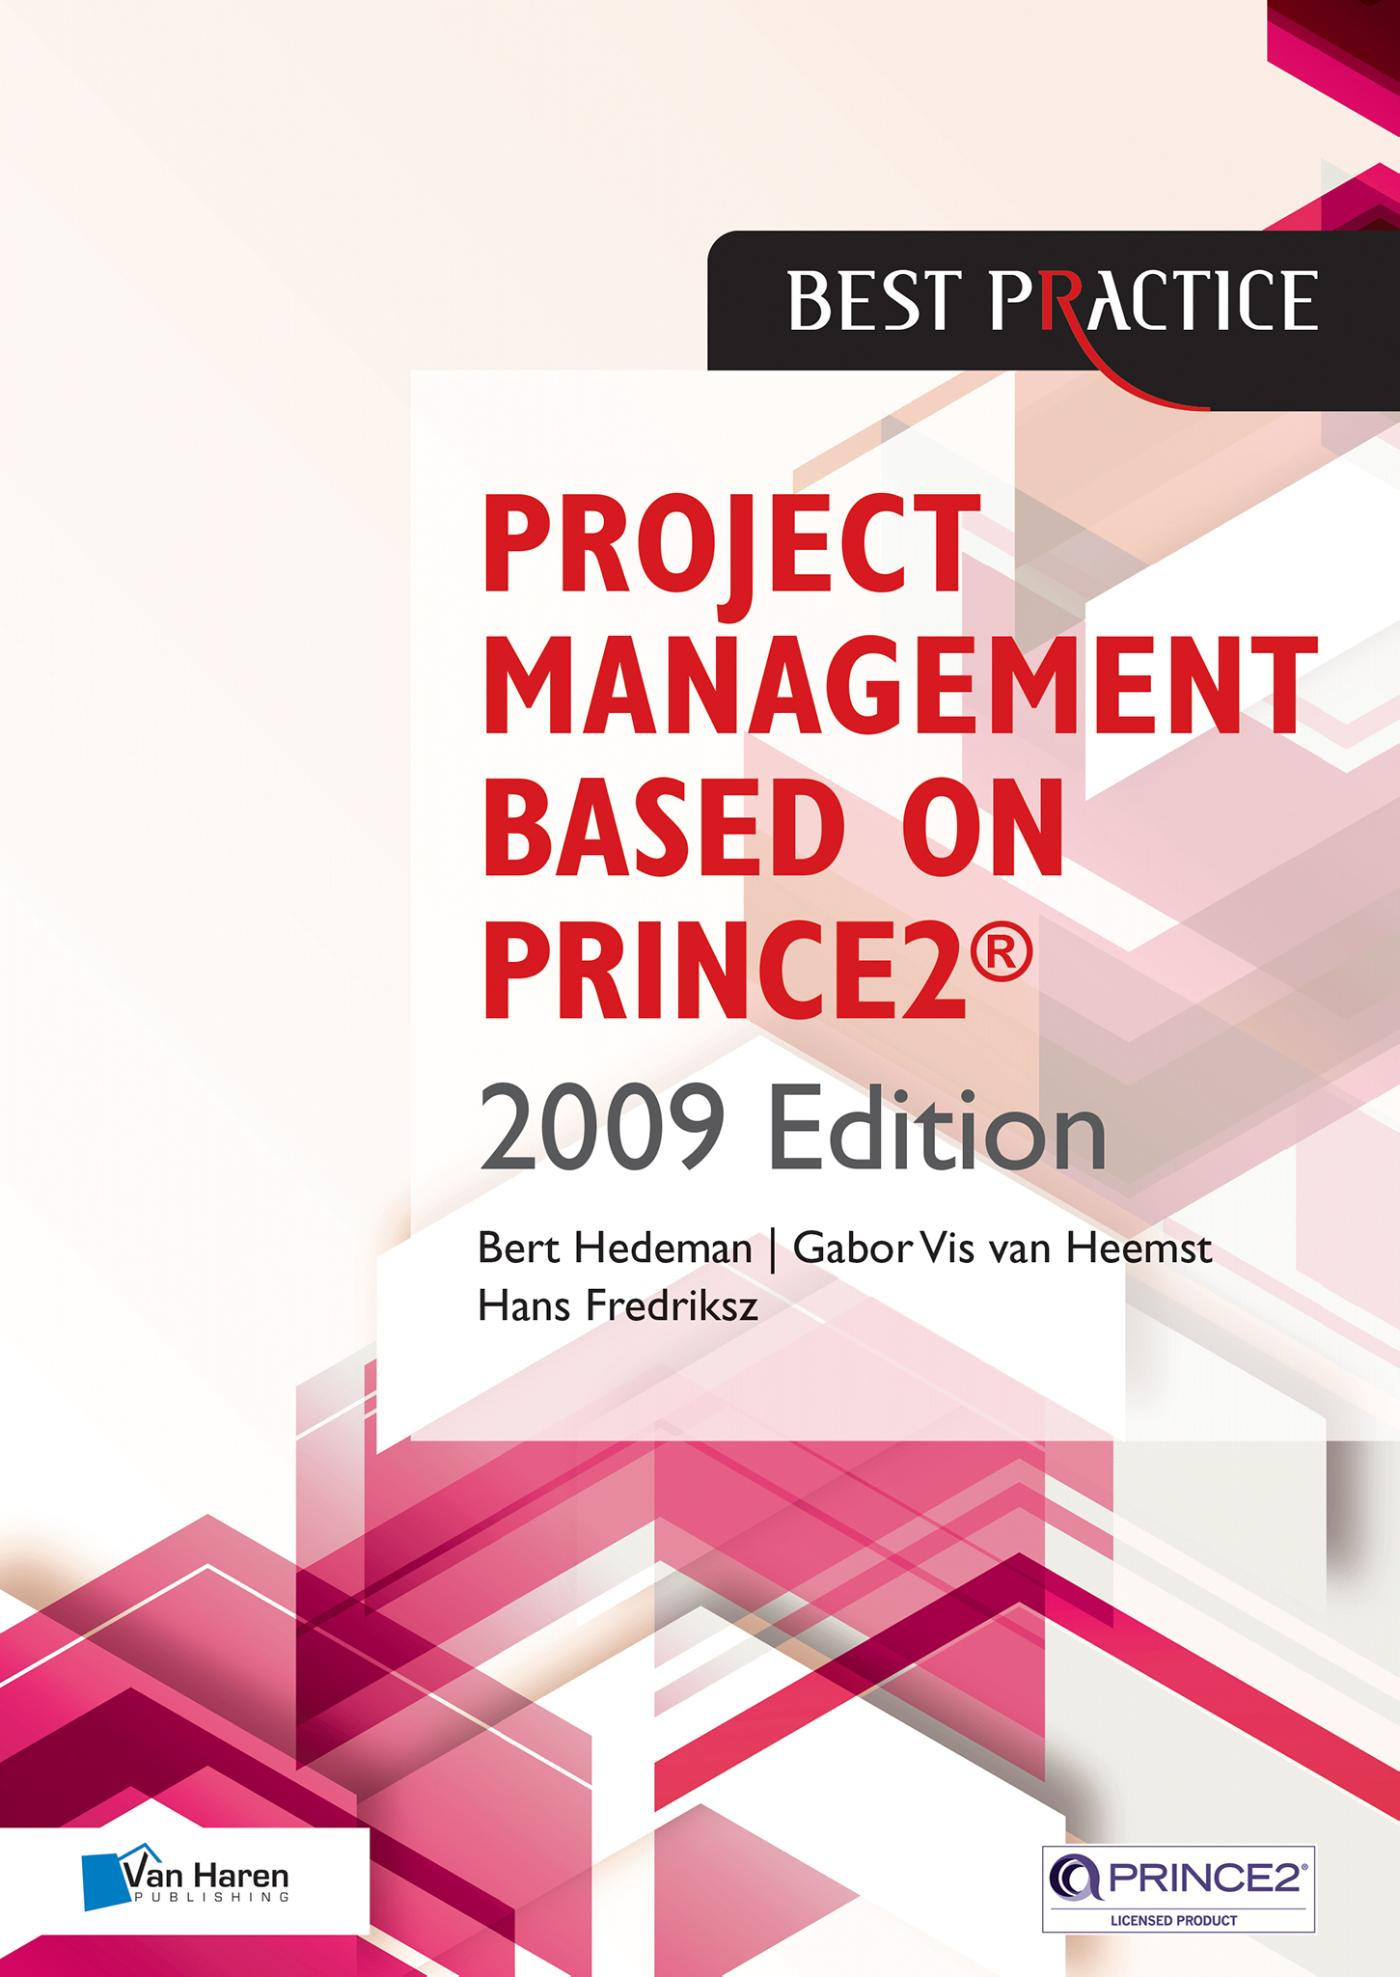 Project management based on Prince2 (english version)